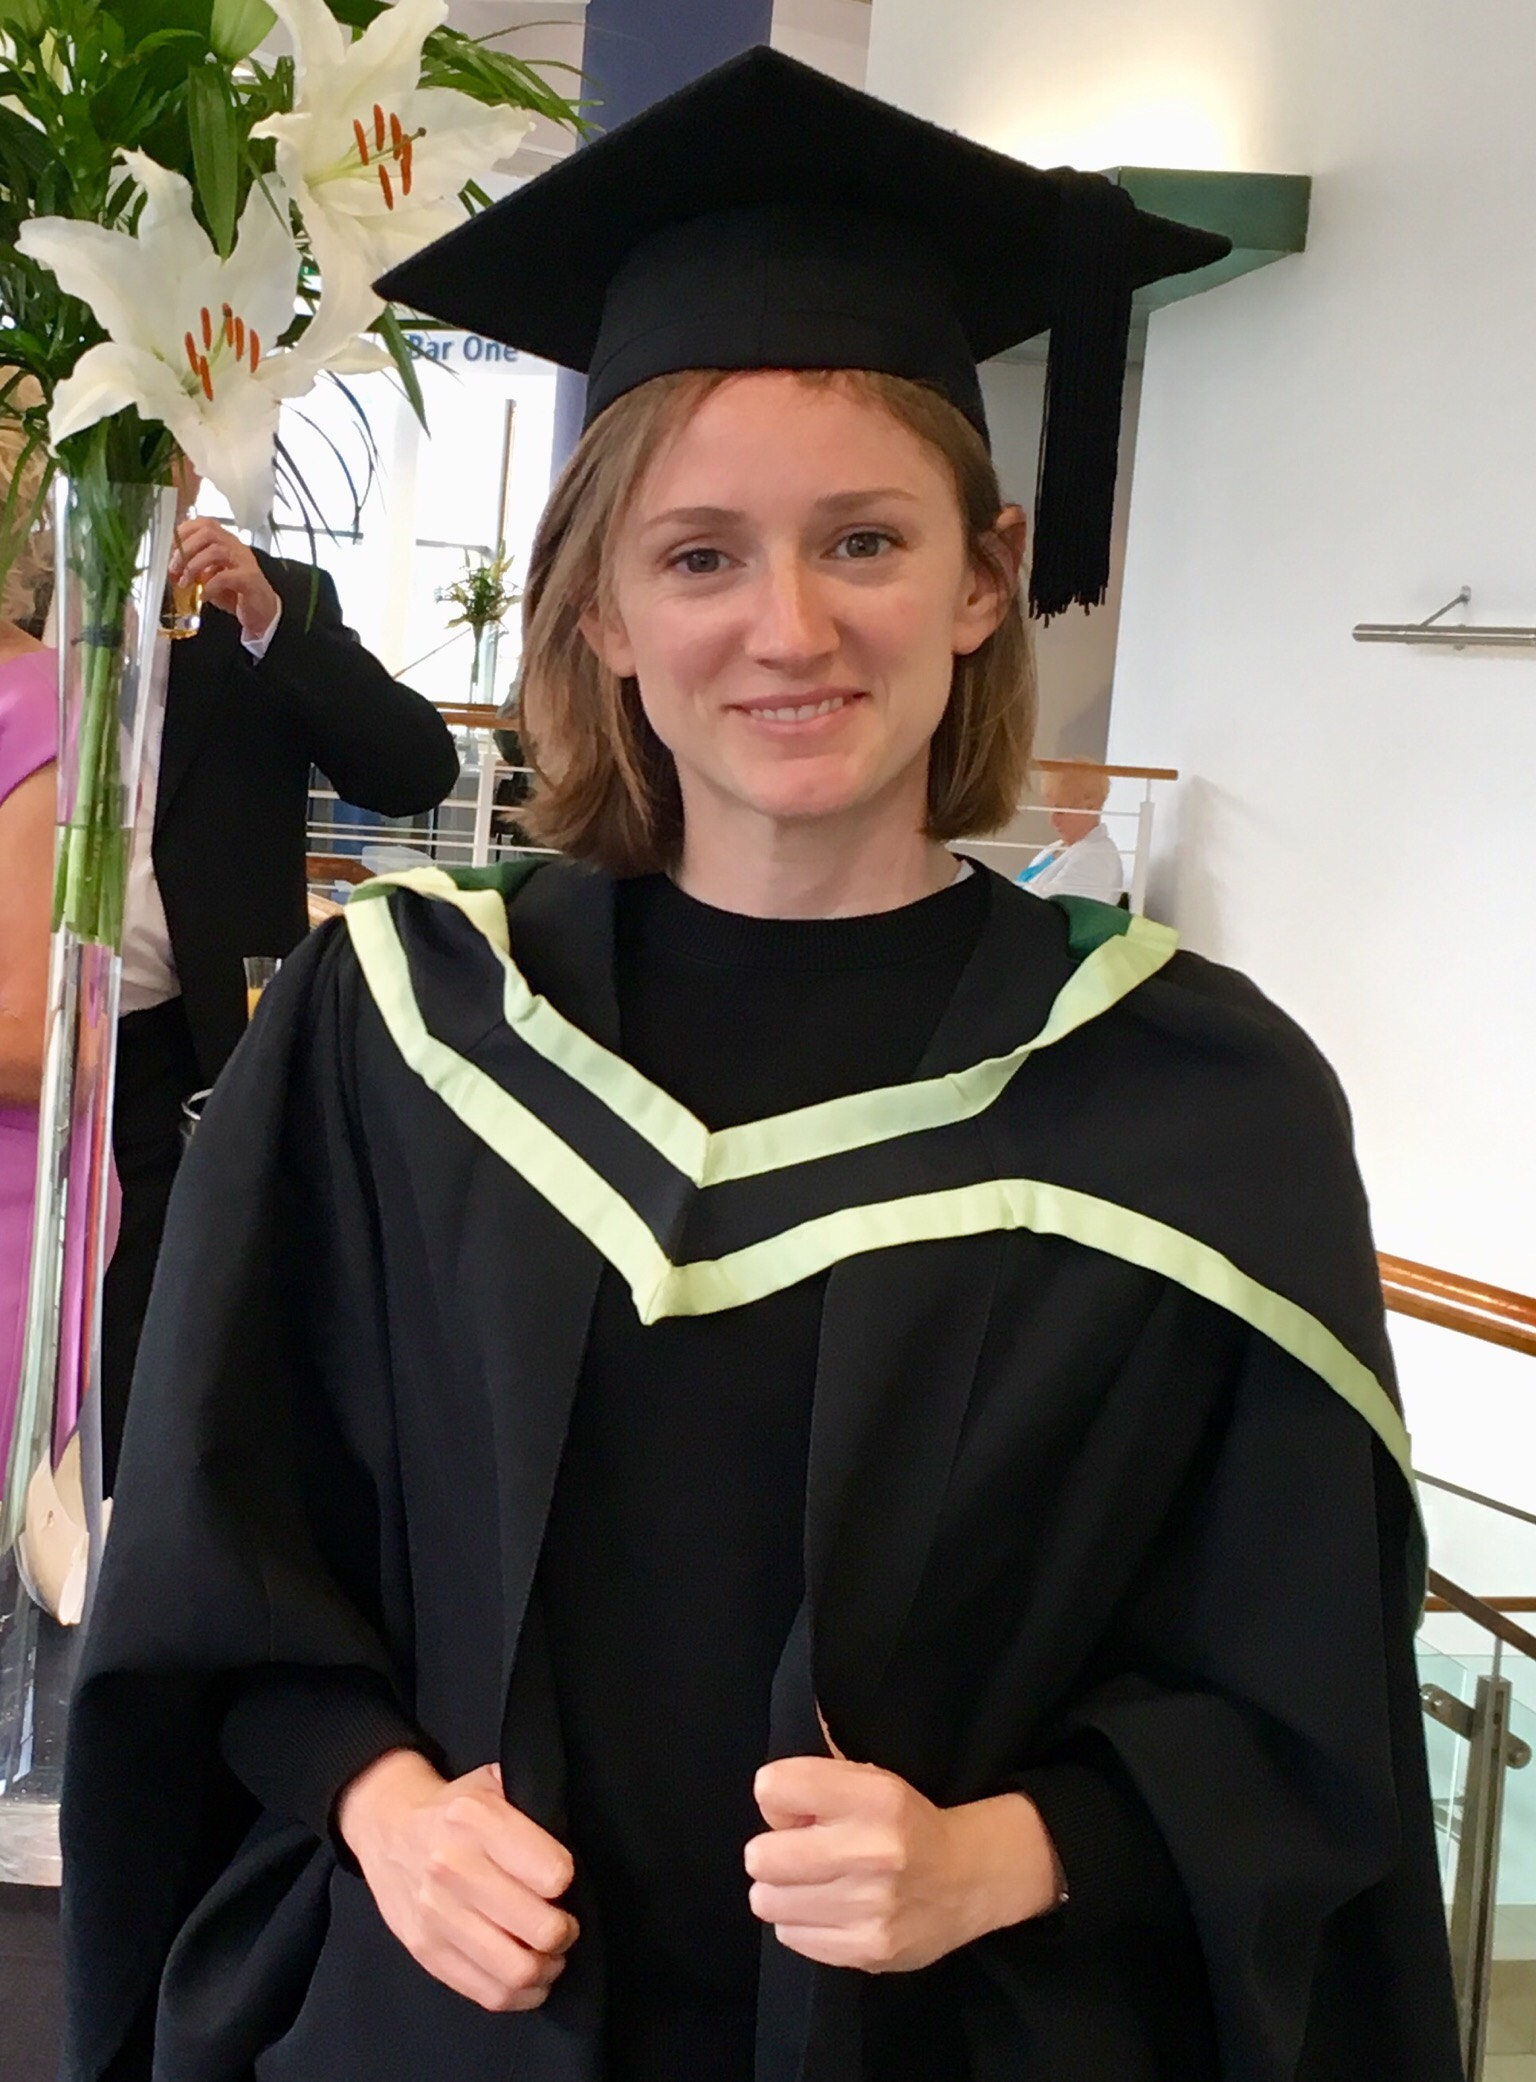 Ulster University_Irish Times Training_Graduation 2019_Rae Moore.jpeg